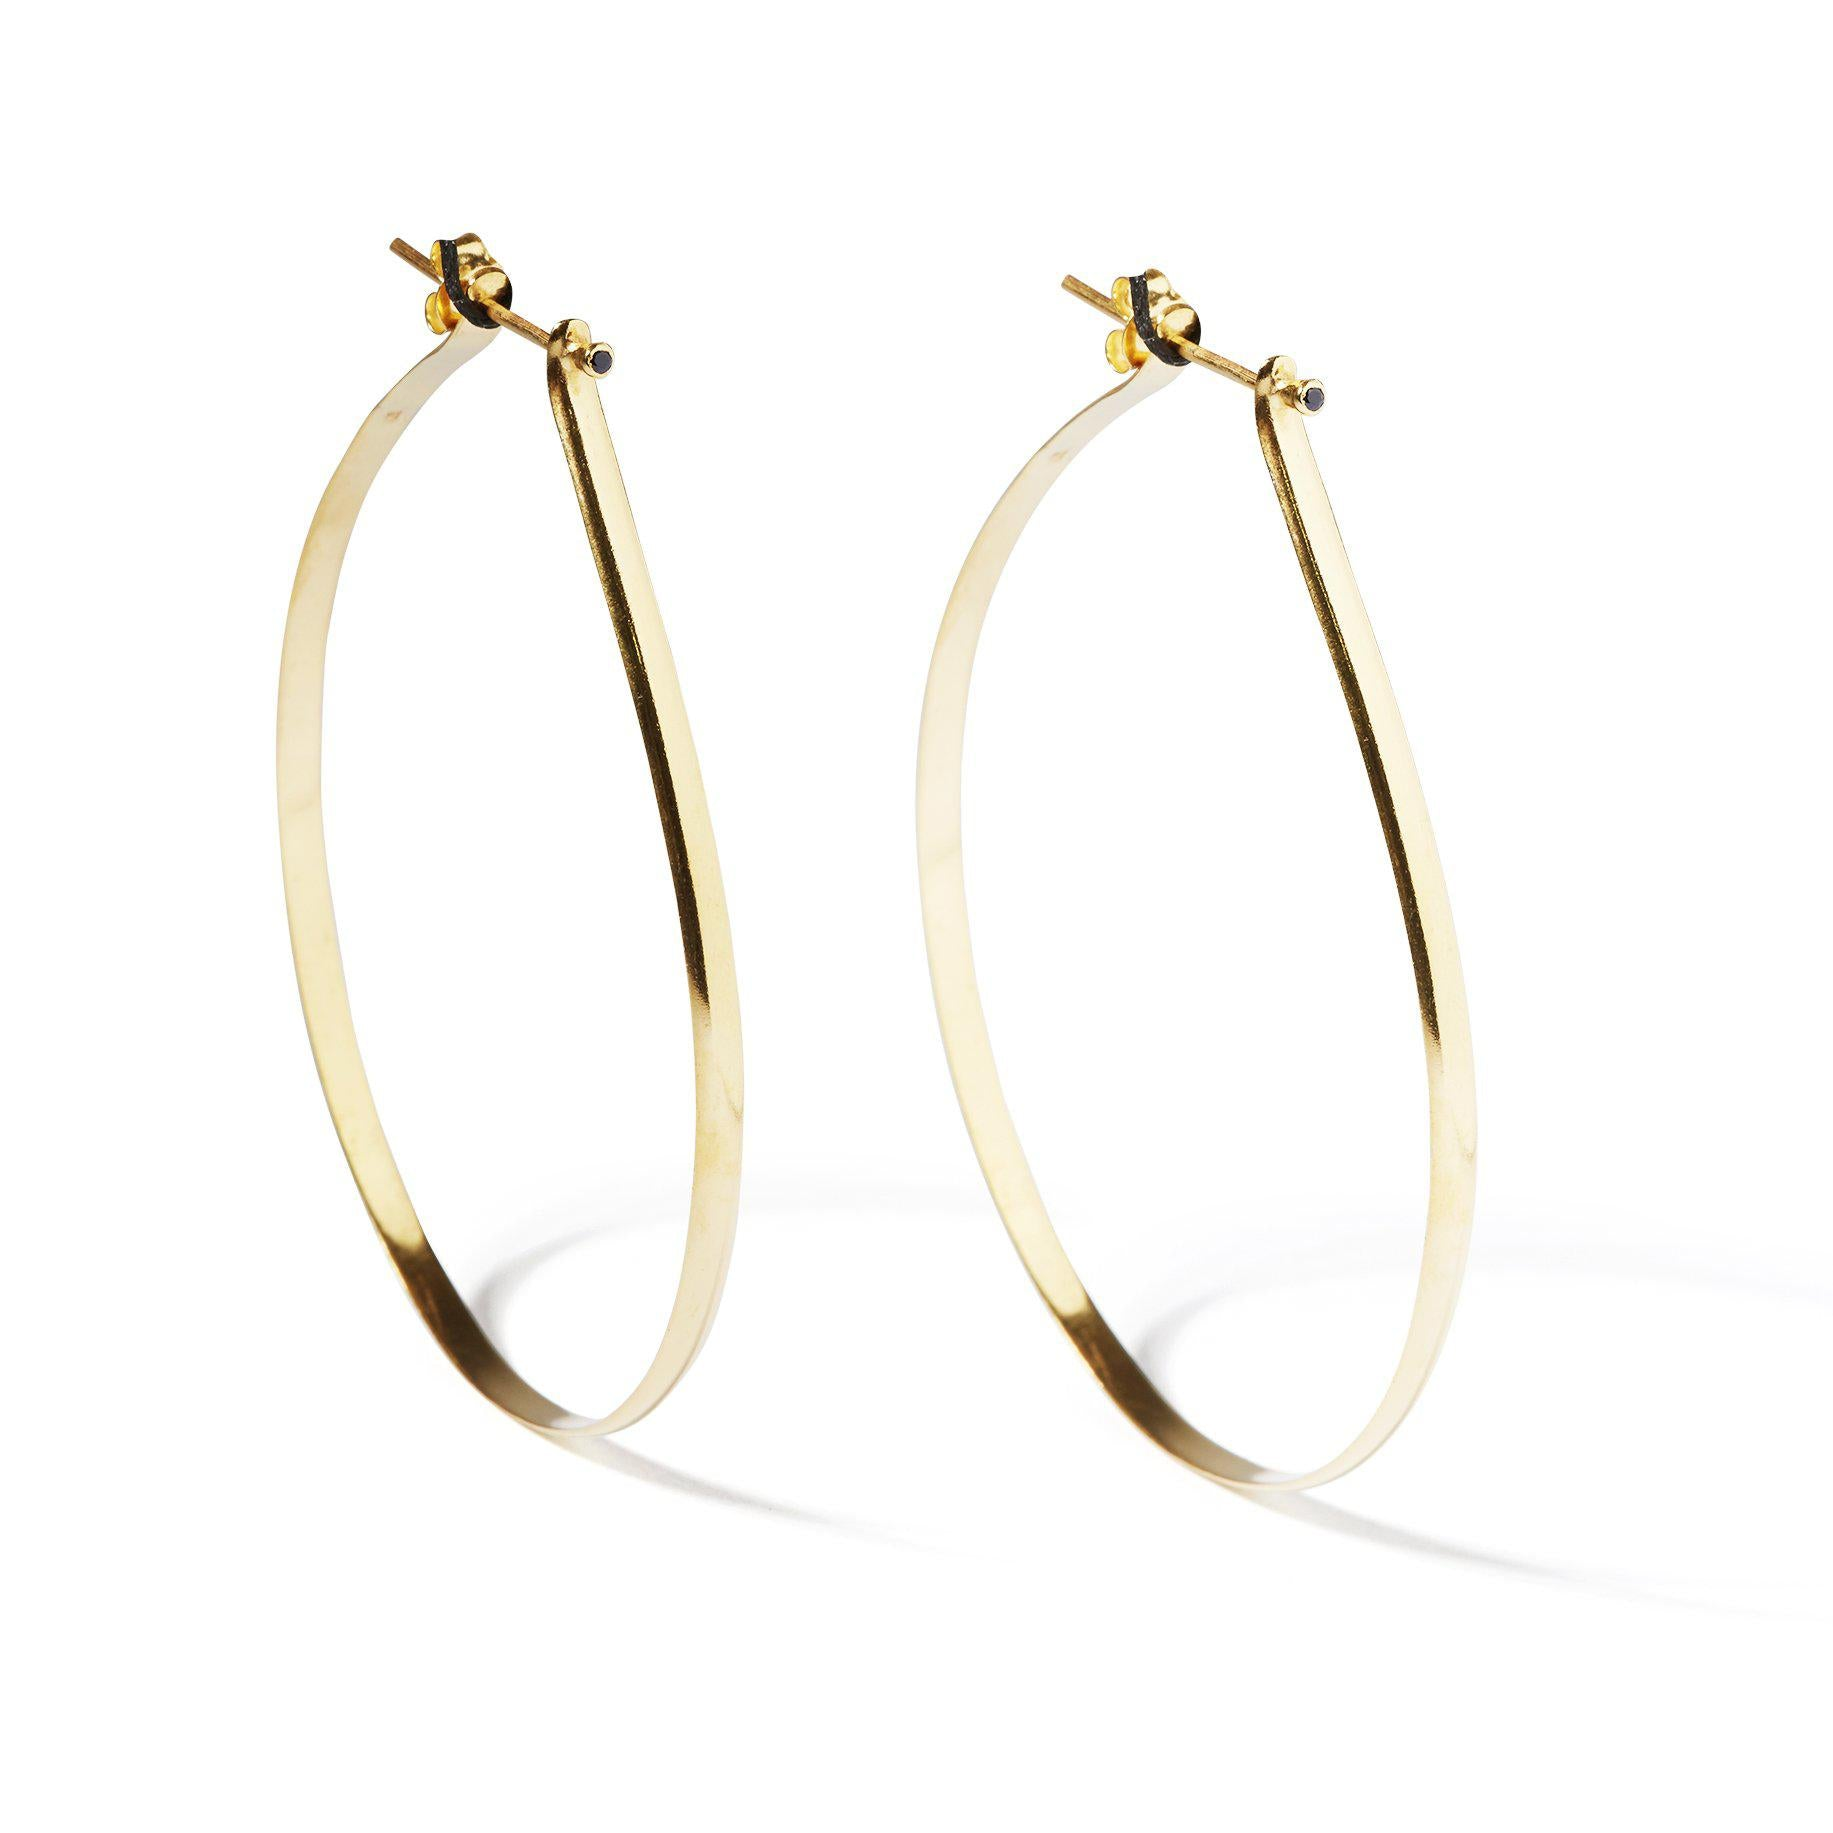 The Spiked Hoops